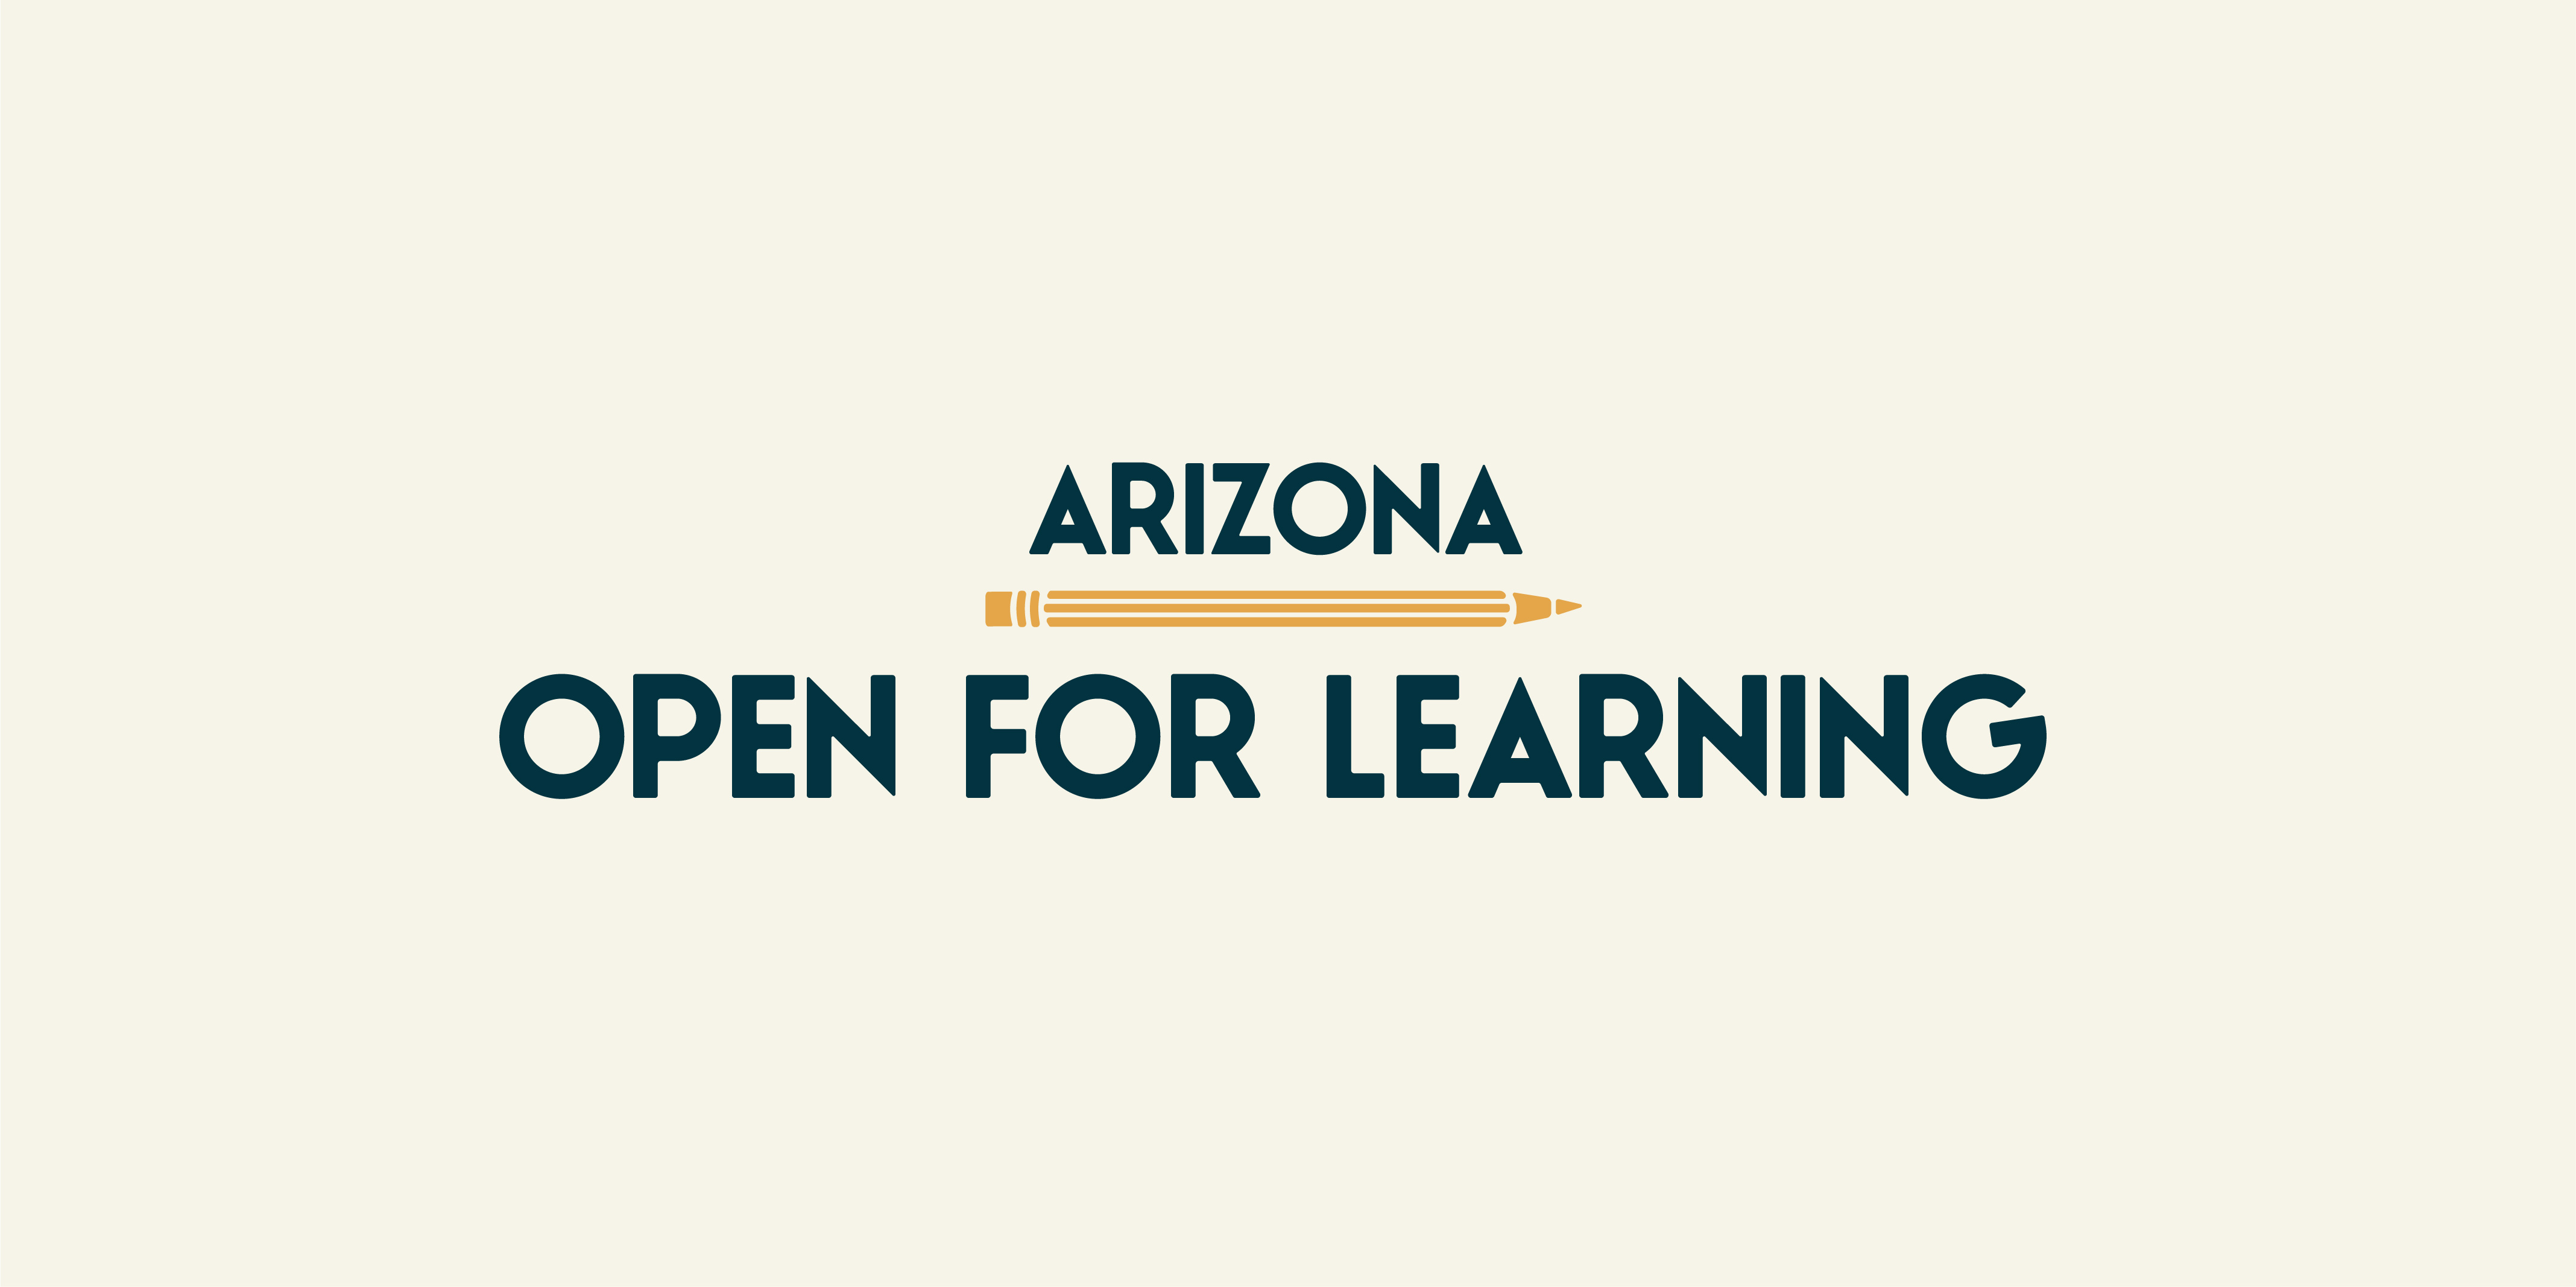 Arizona: Open For Learning